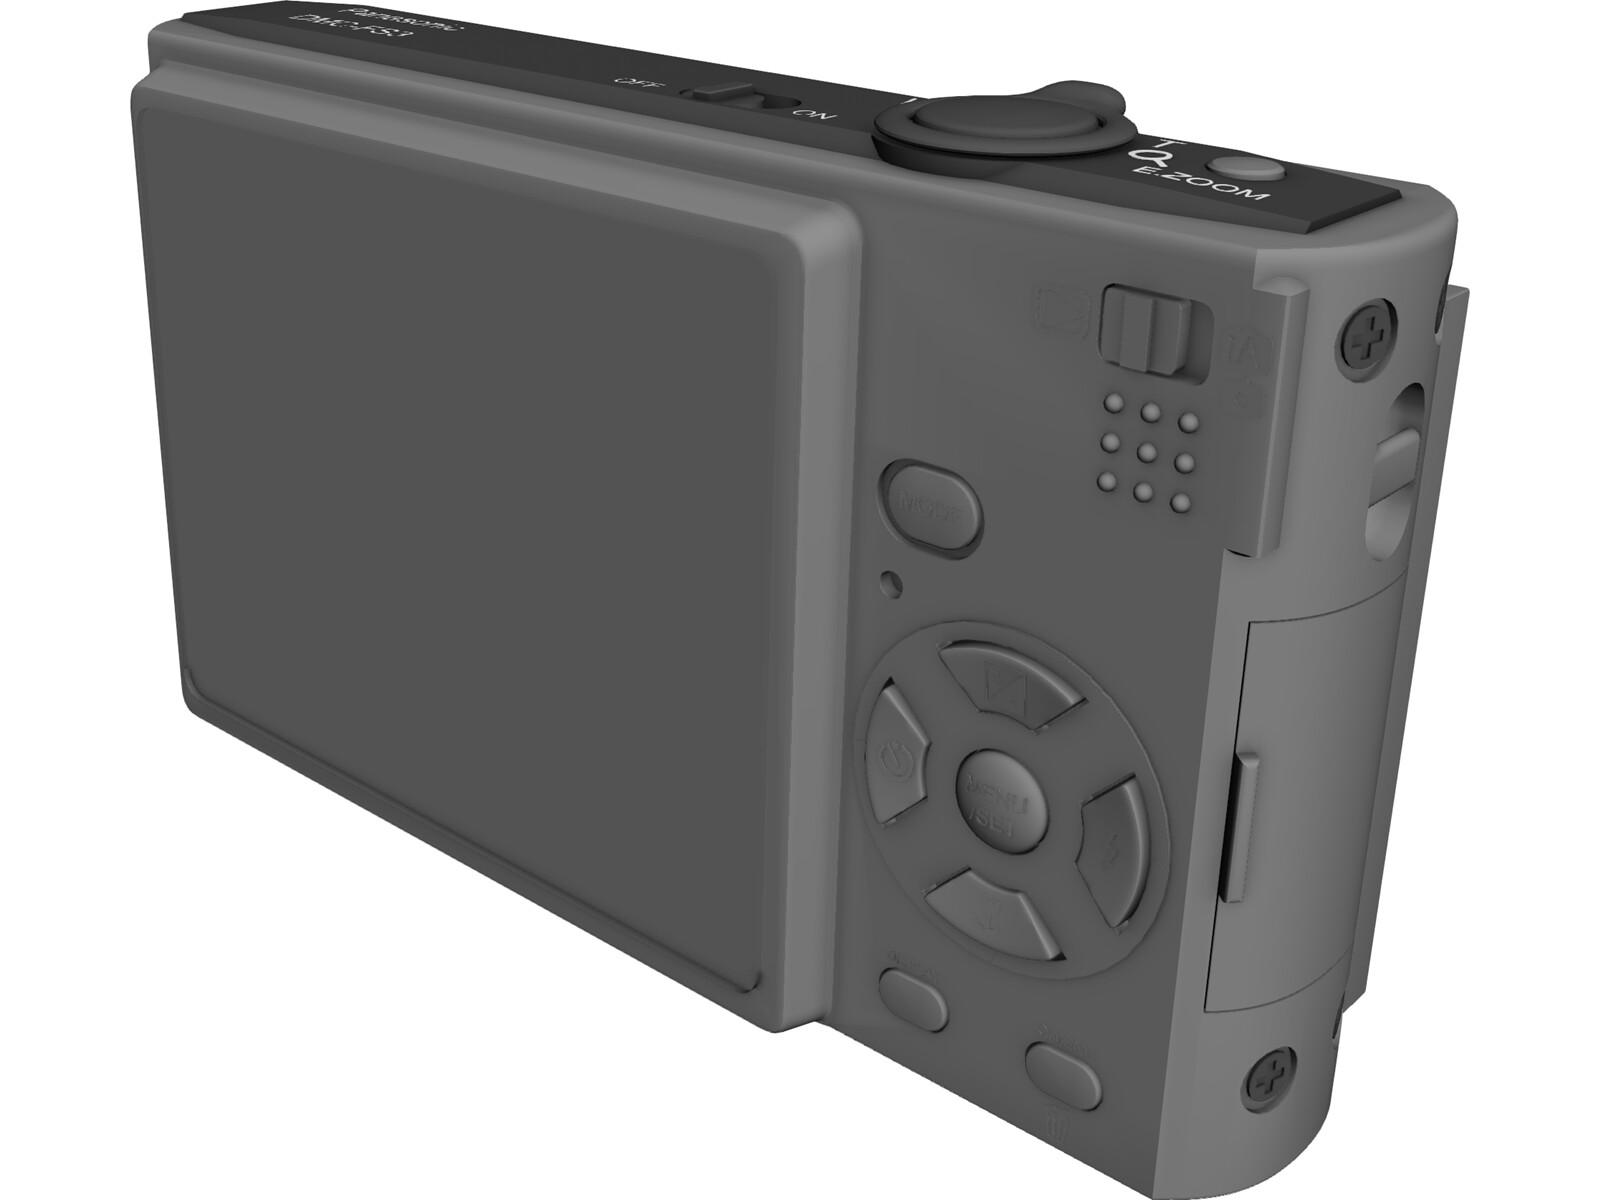 Panasonic Lumix DMC-FS3 3D Model